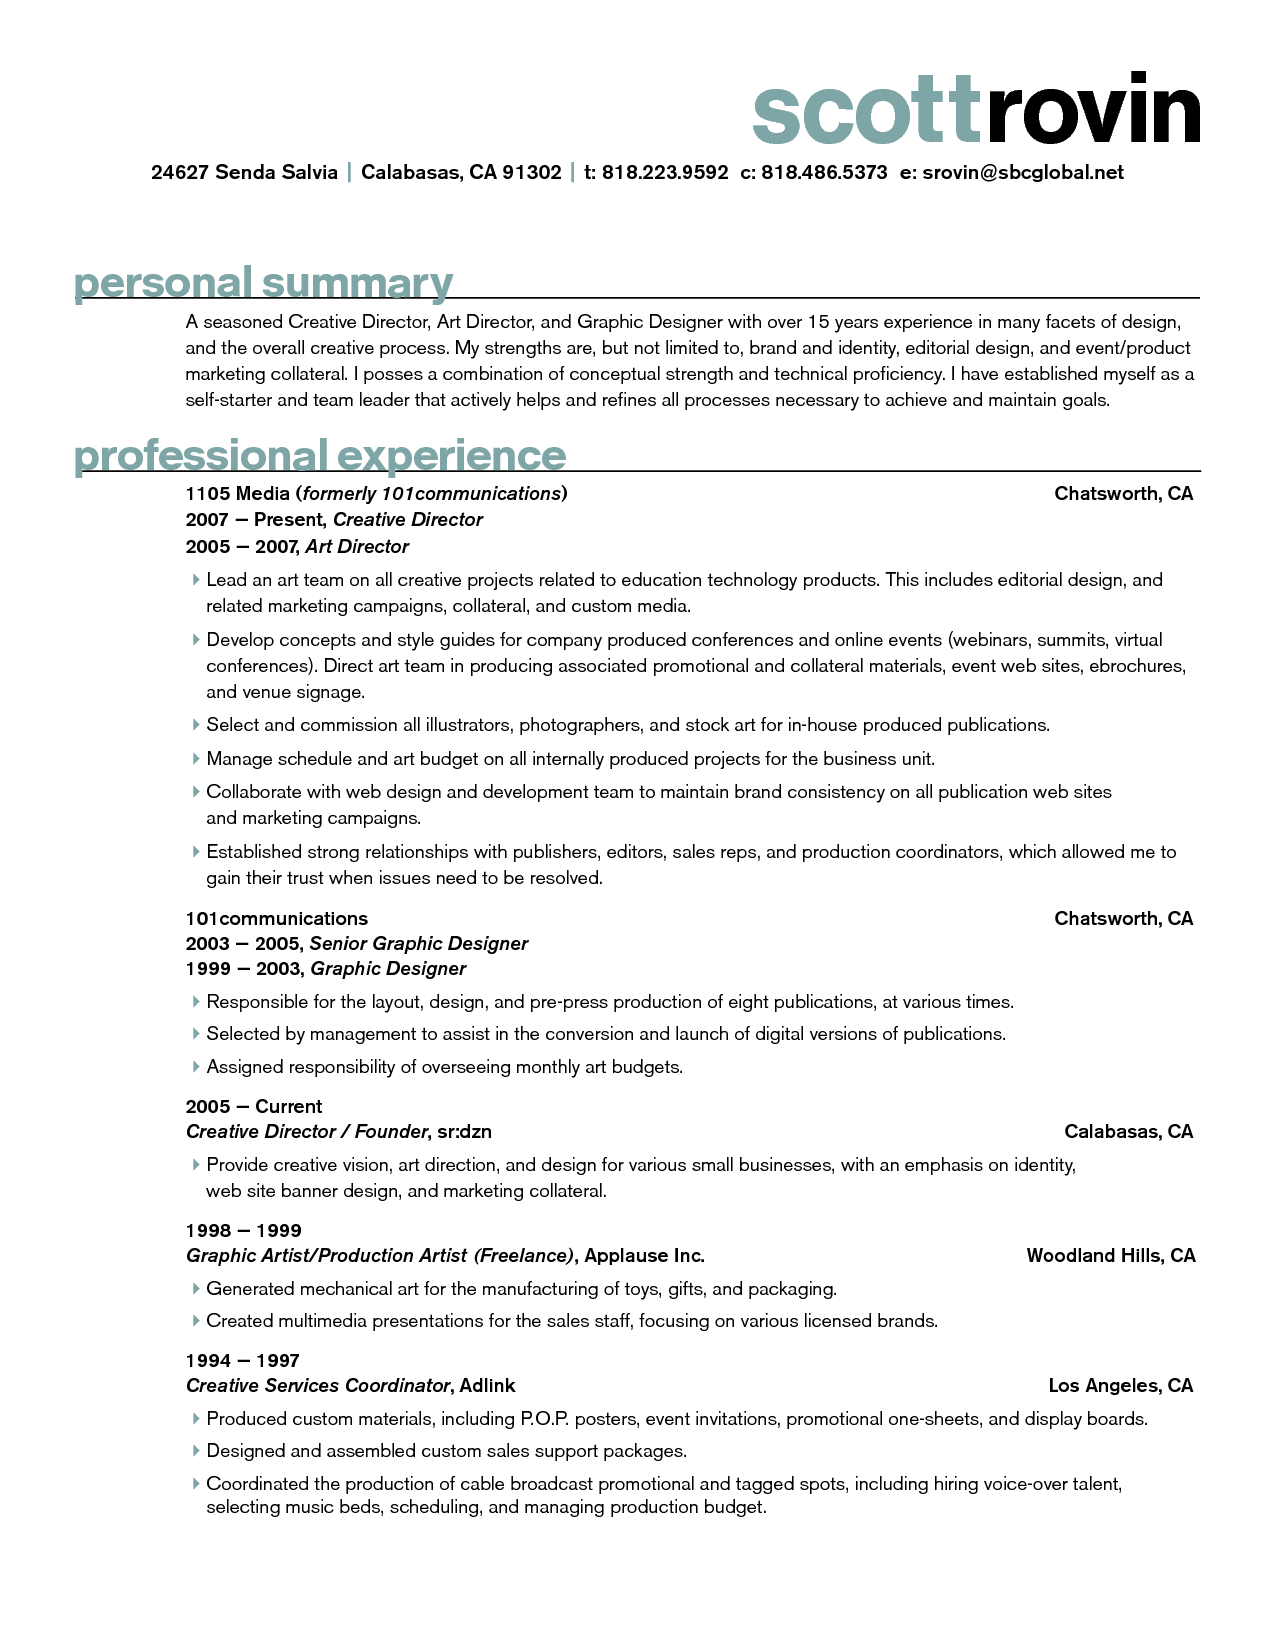 creative graphic design resumes server error - Graphics Production Artist Resume